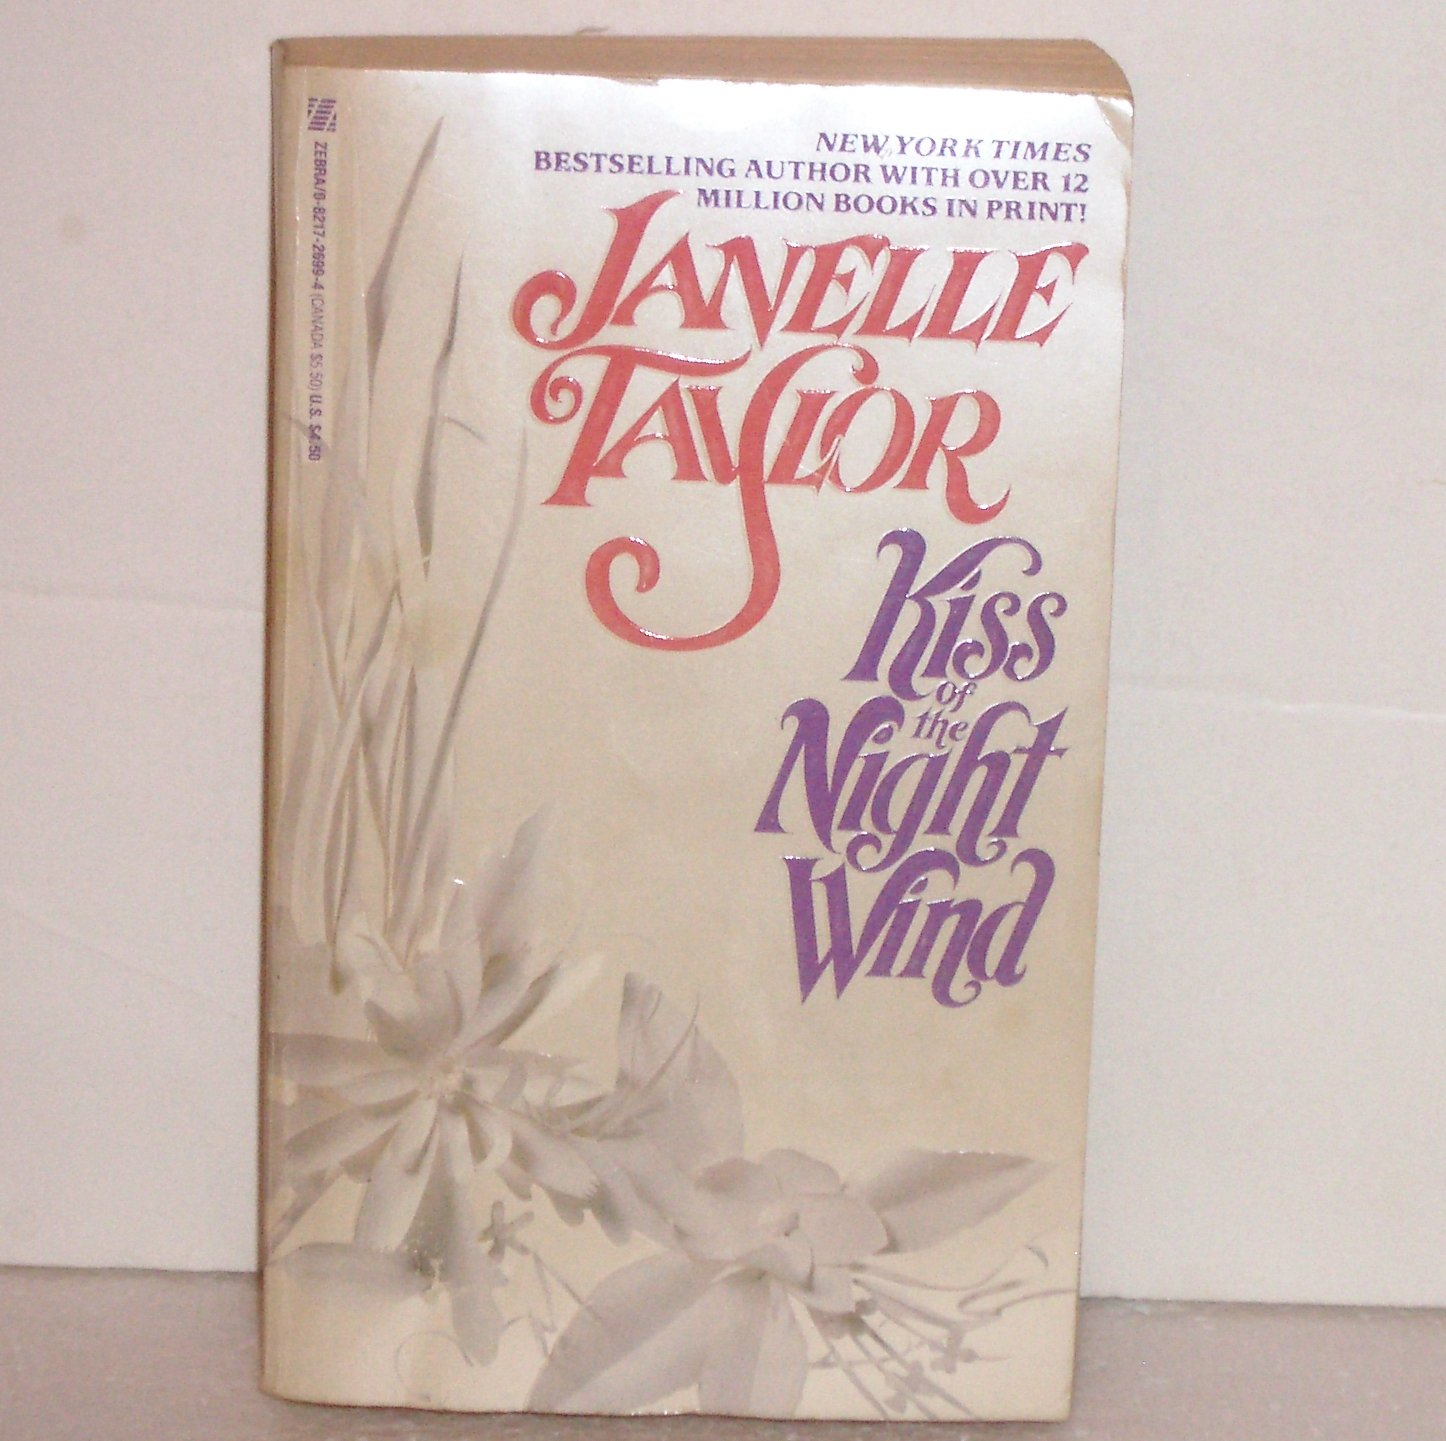 Kiss of the Night Wind by Janelle Taylor Historical Western Romance 1989